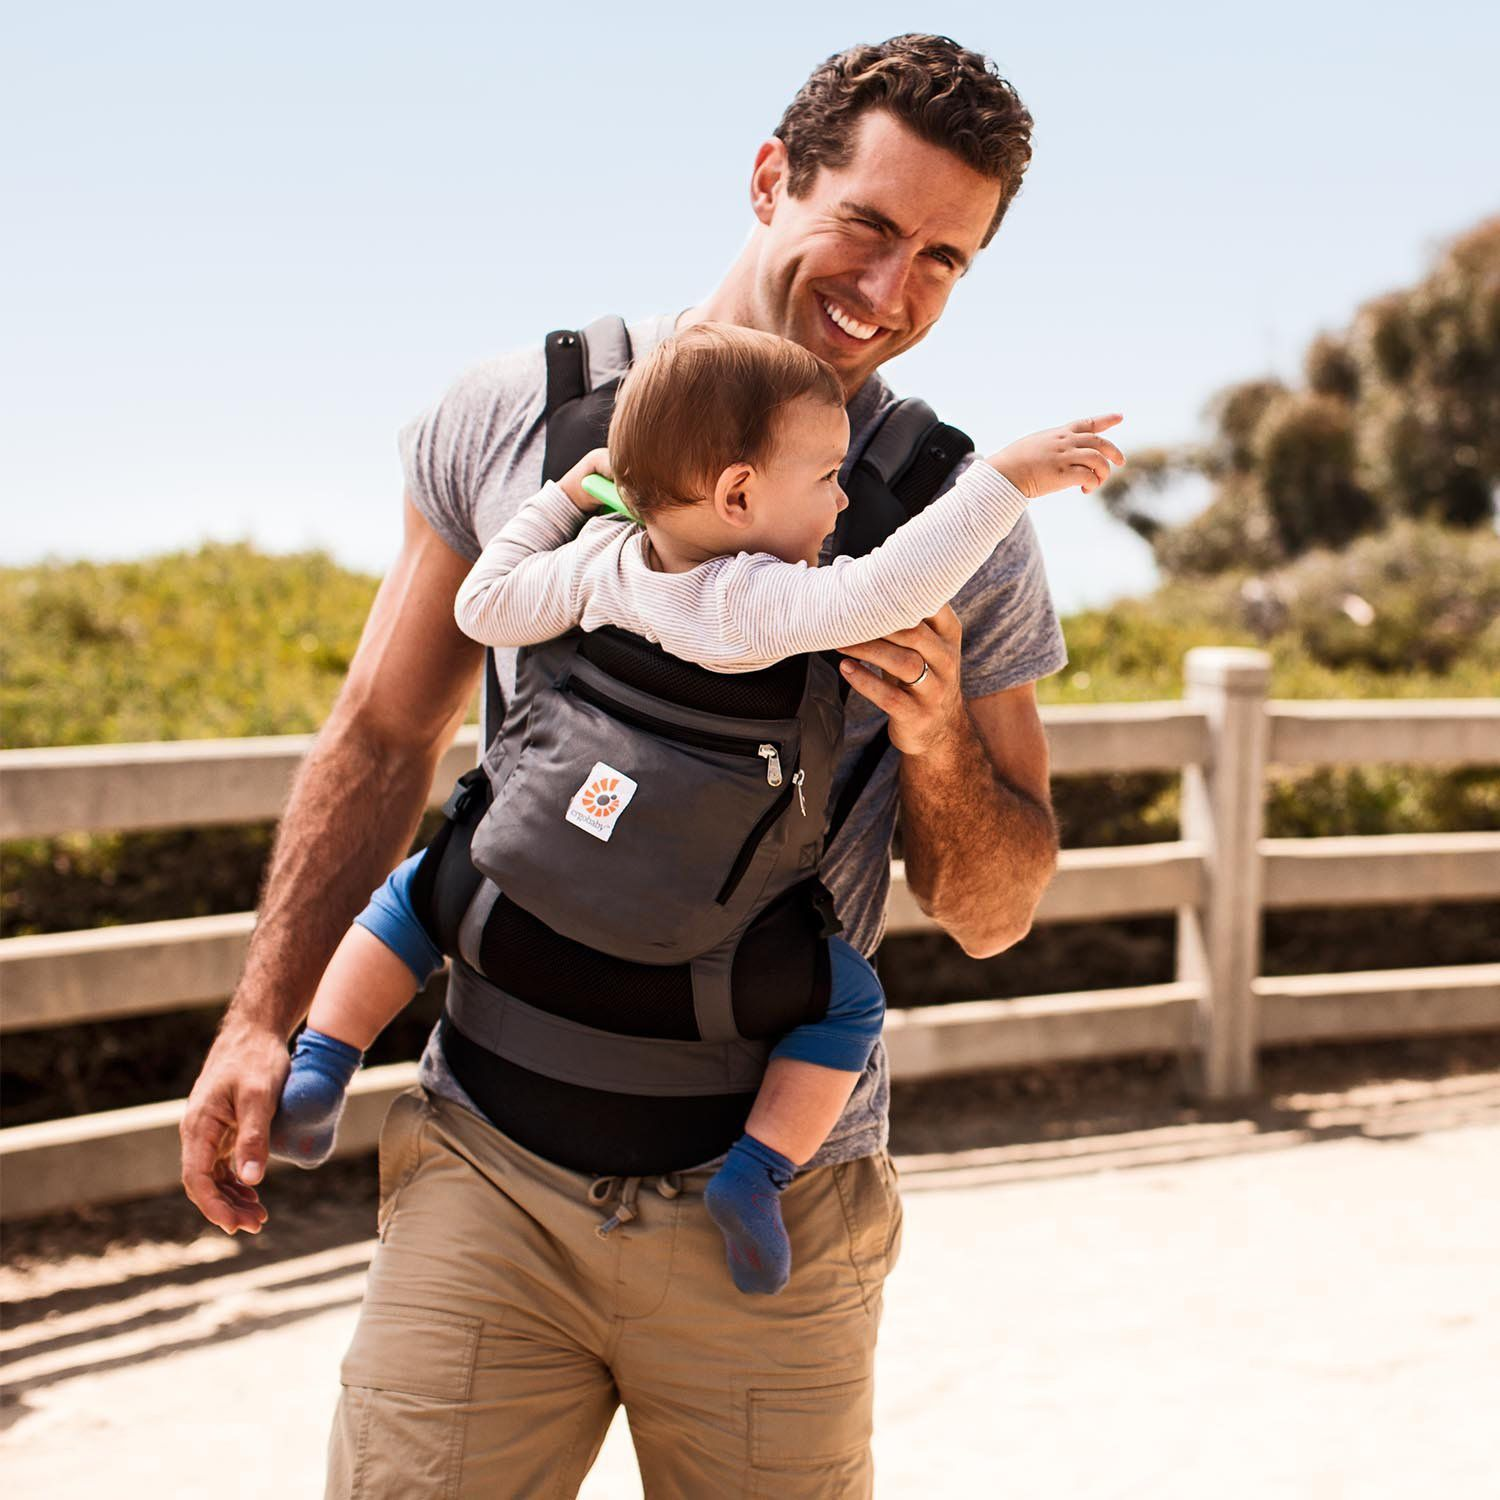 The 8 Best Baby Carriers For Dad Of 2019